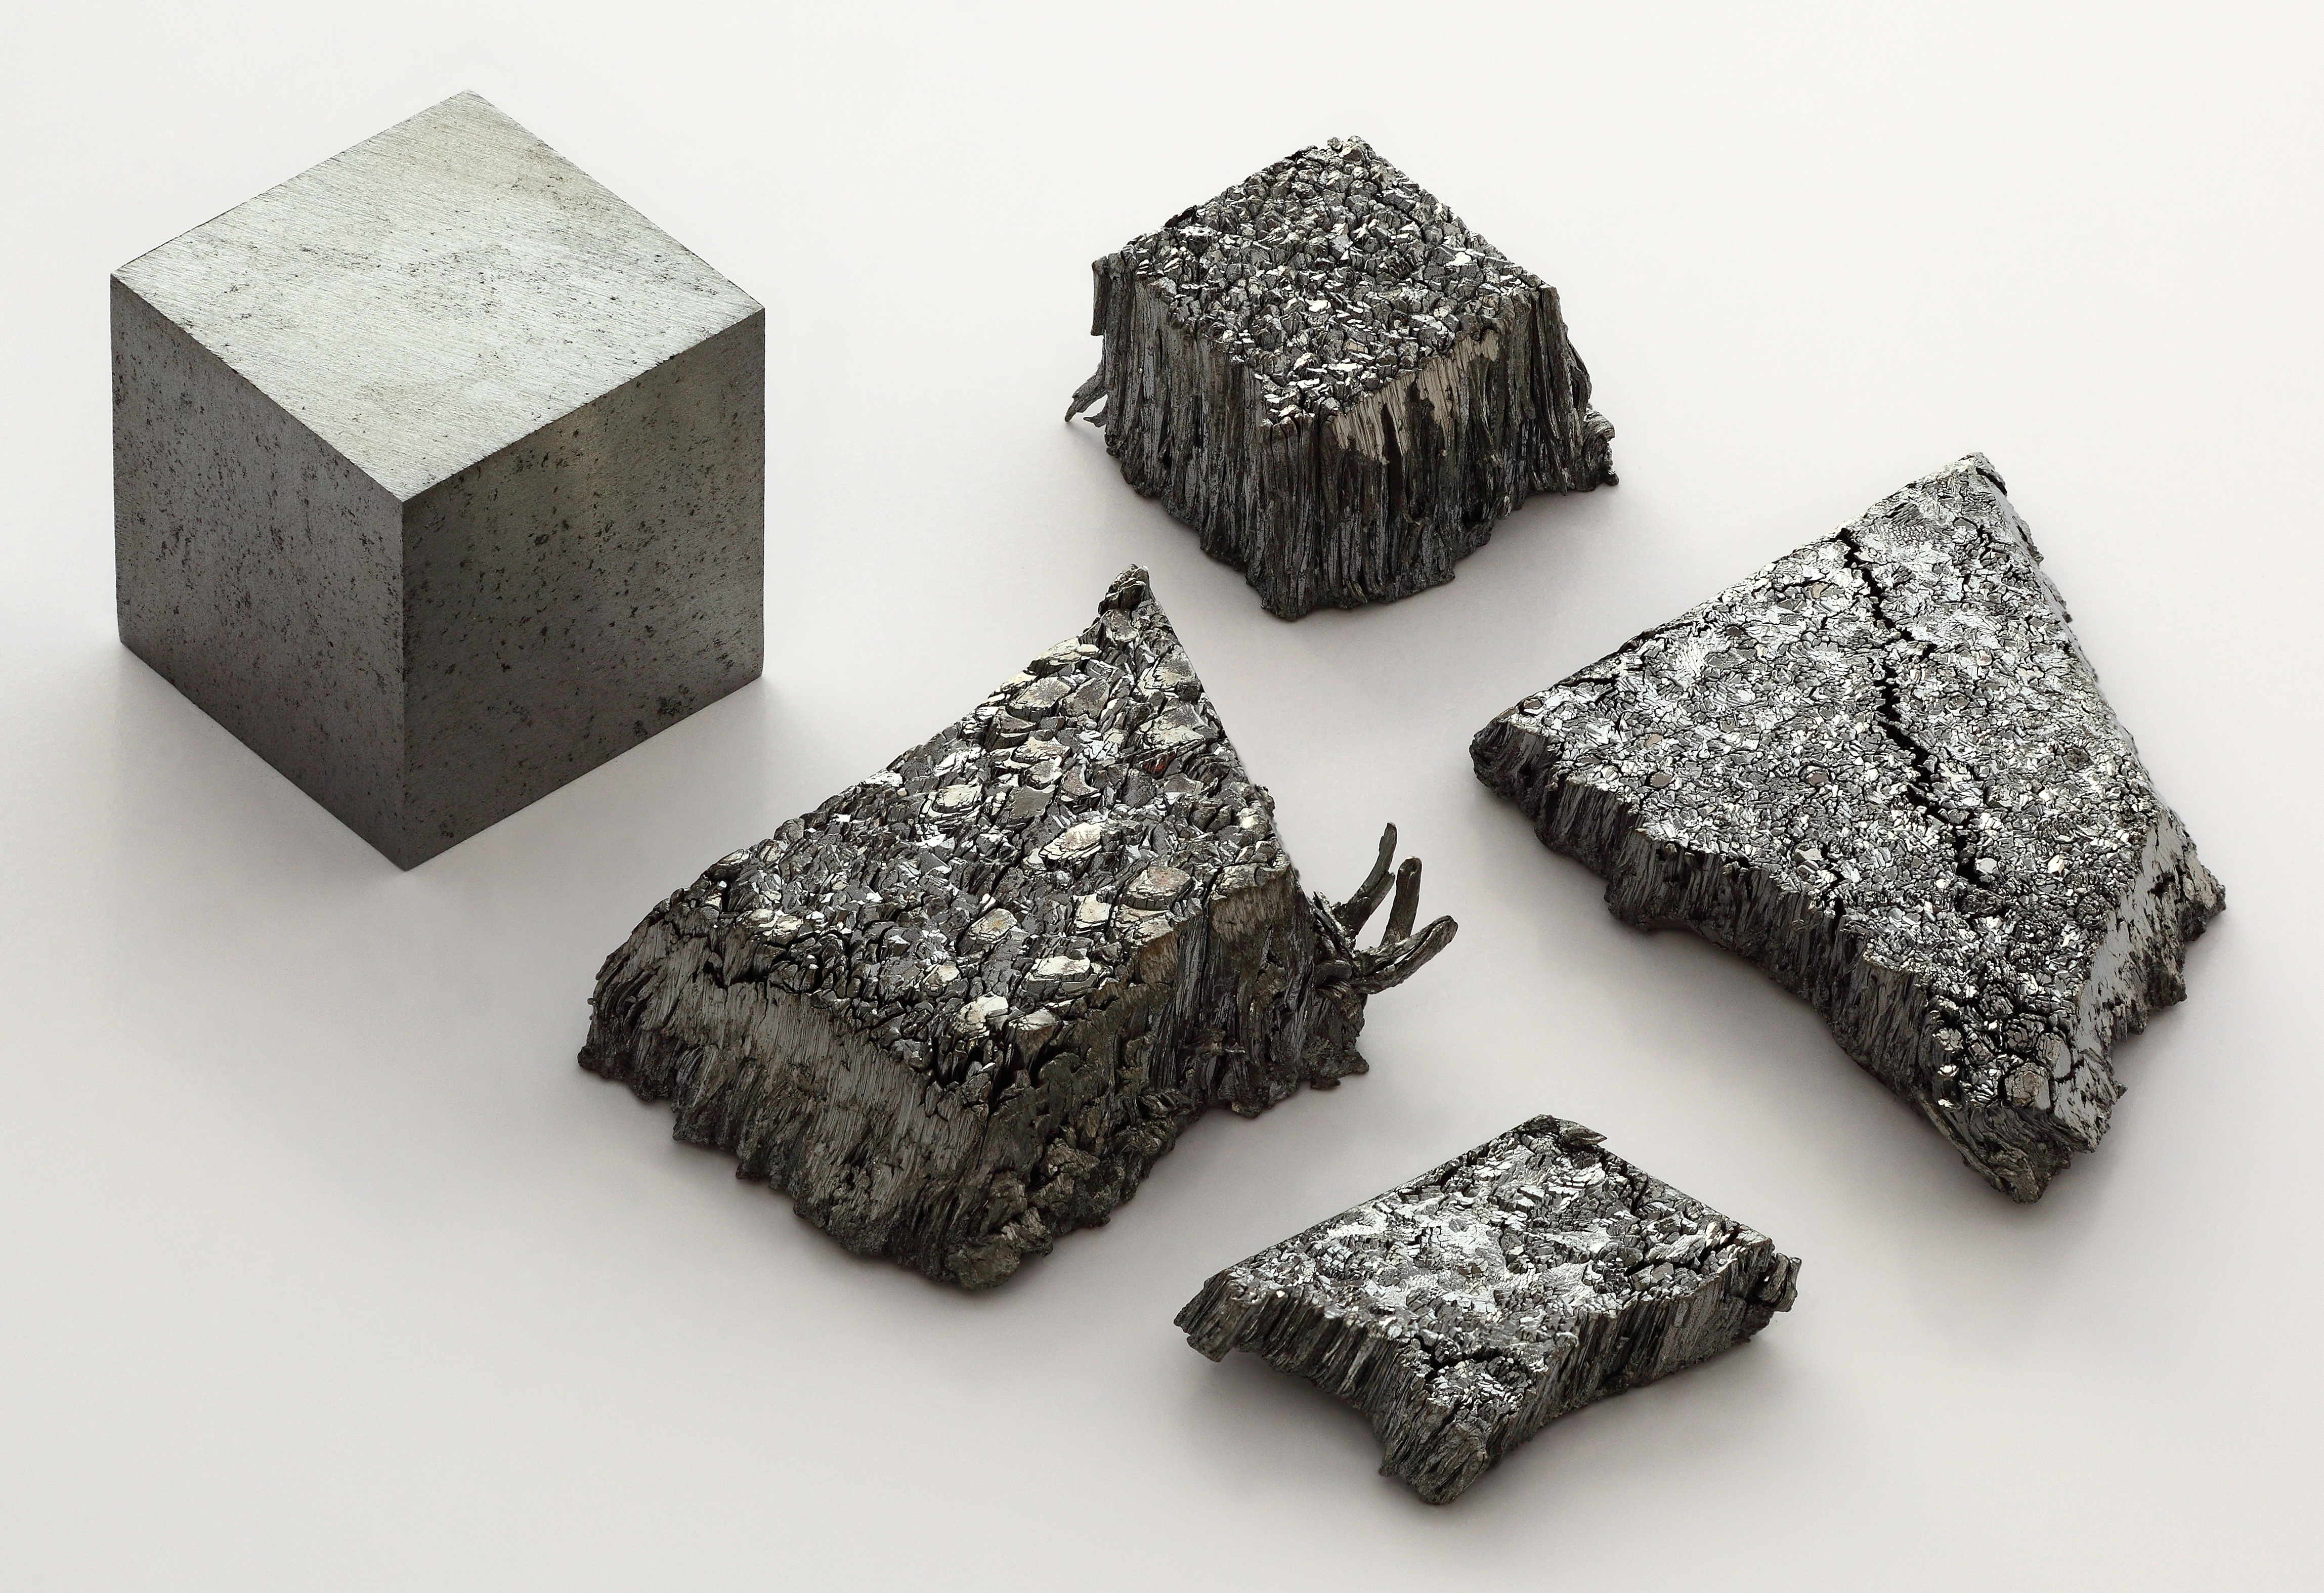 Lutetium Cube and Dendrite Crystals (Alchemist-hp)